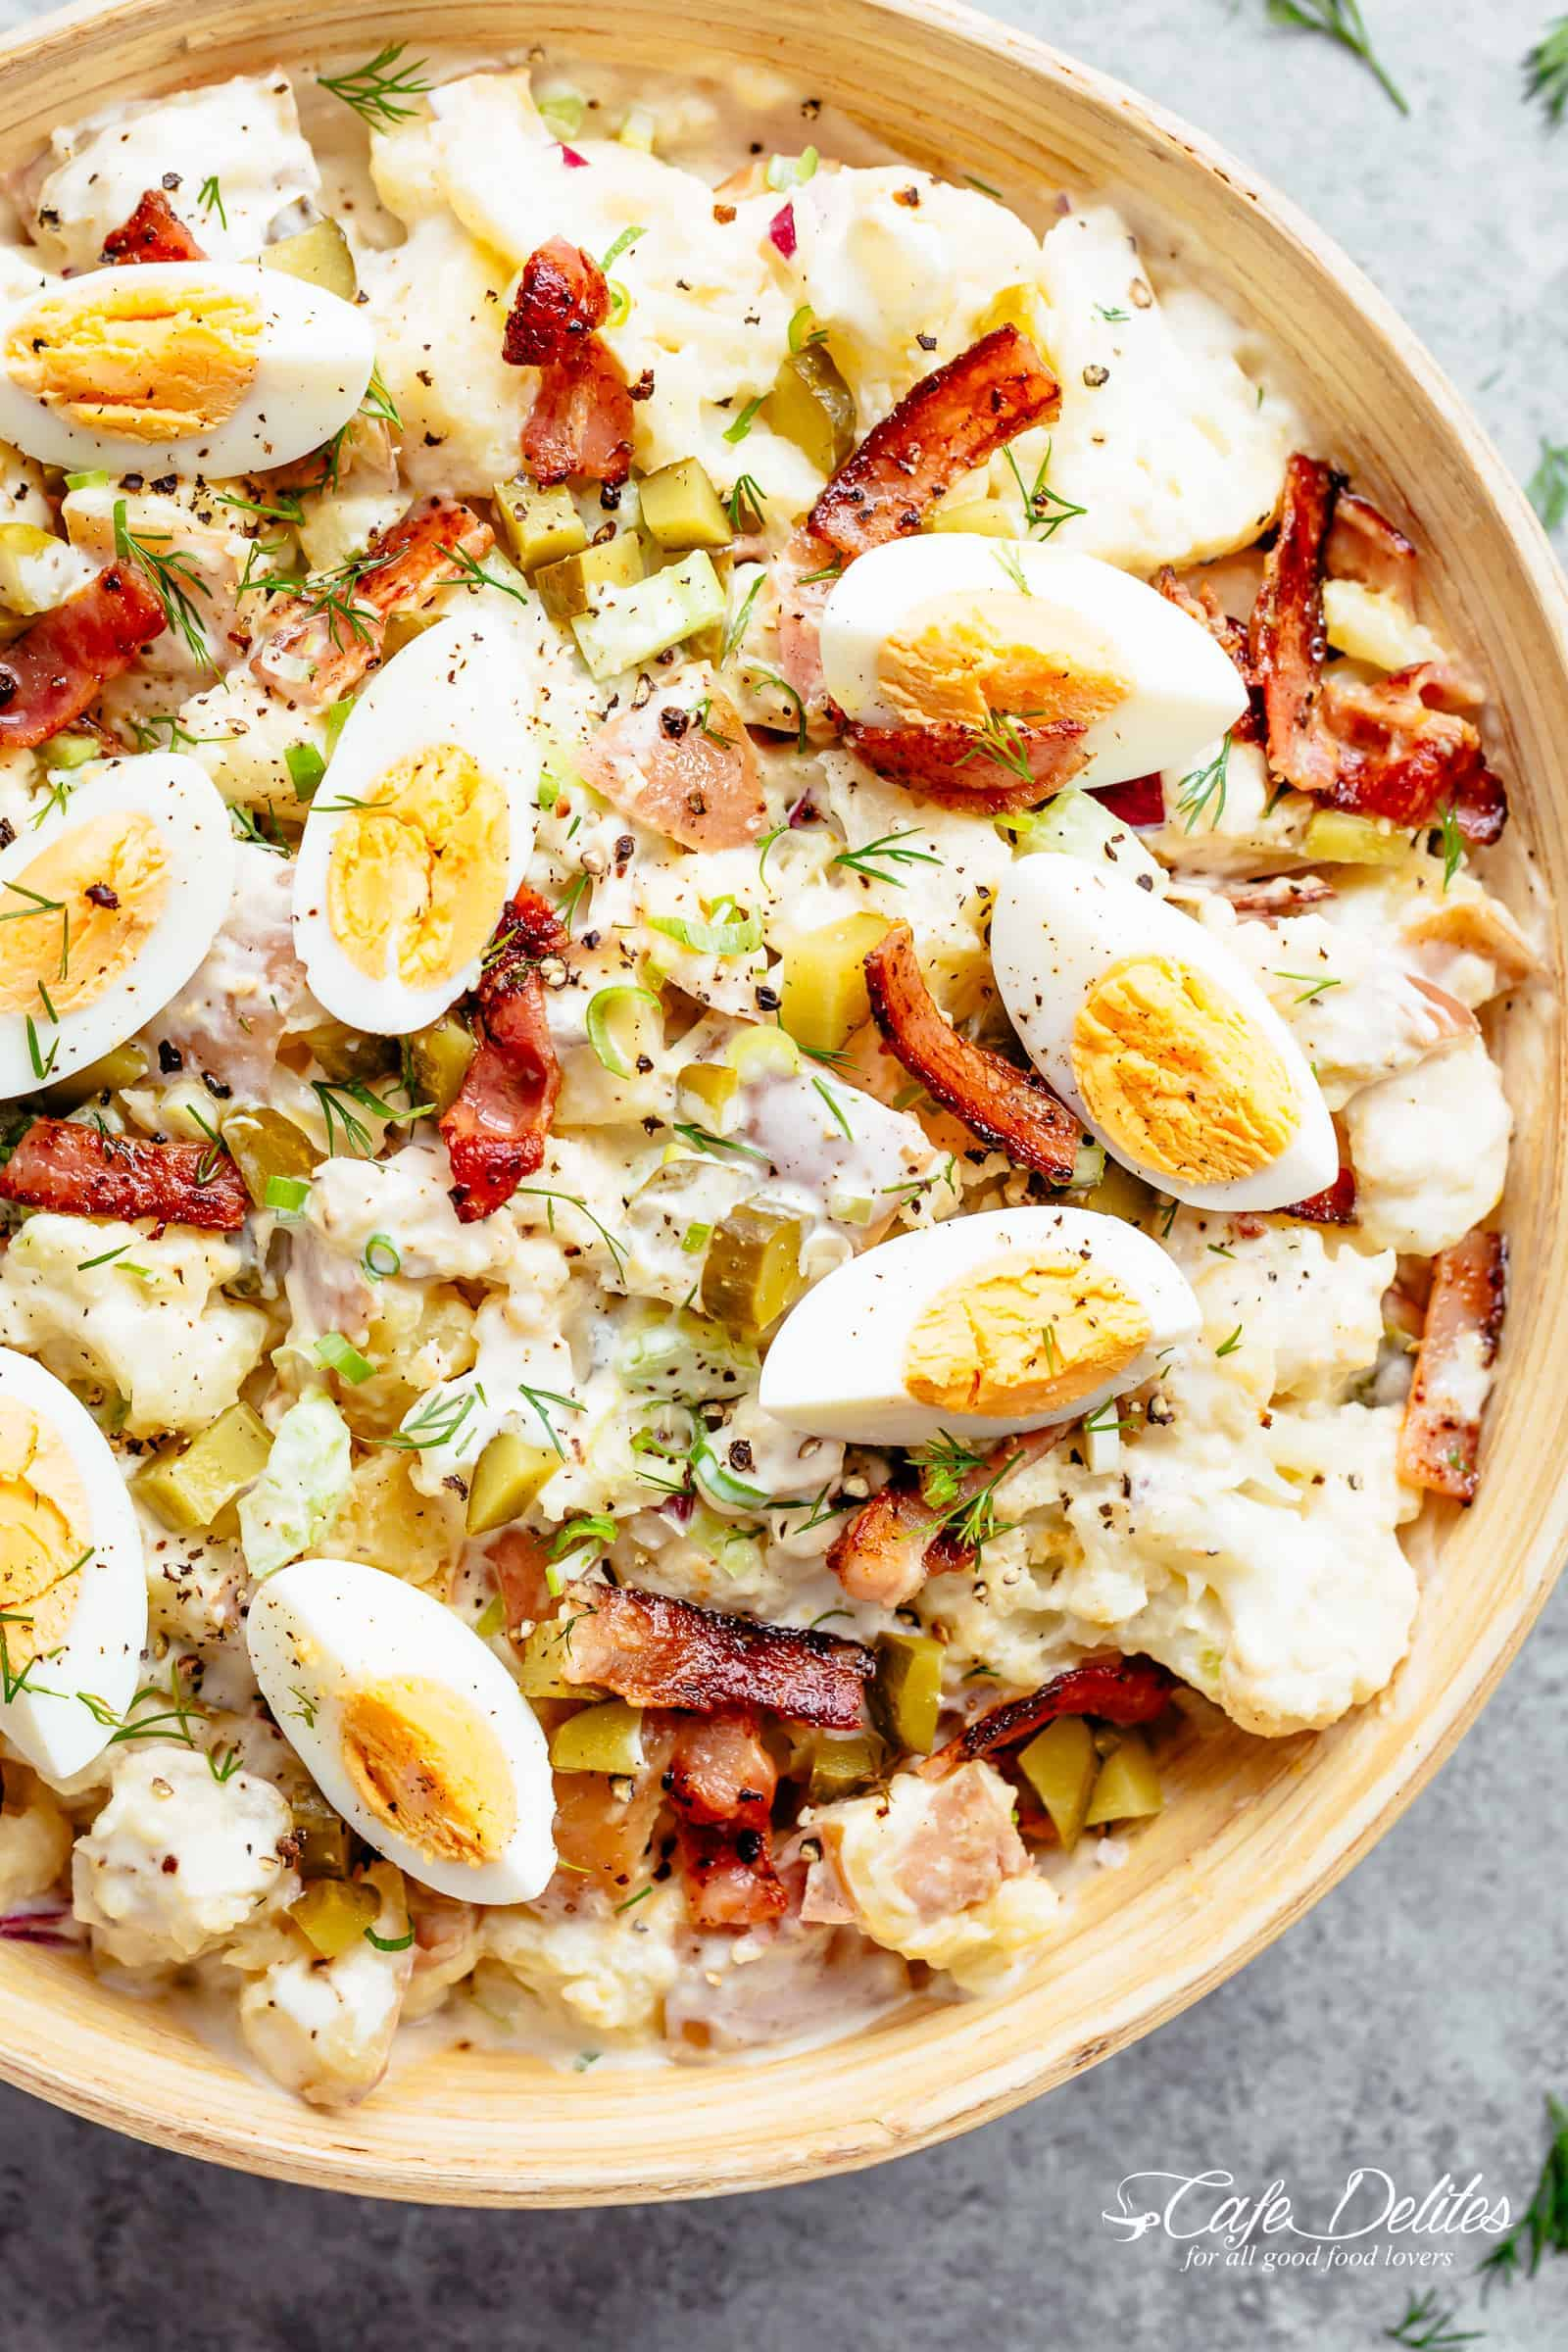 Potato Salad with Bacon, Dill Pickles, Eggs AND a creamy mayo/sour cream dressing! | cafedelites.com